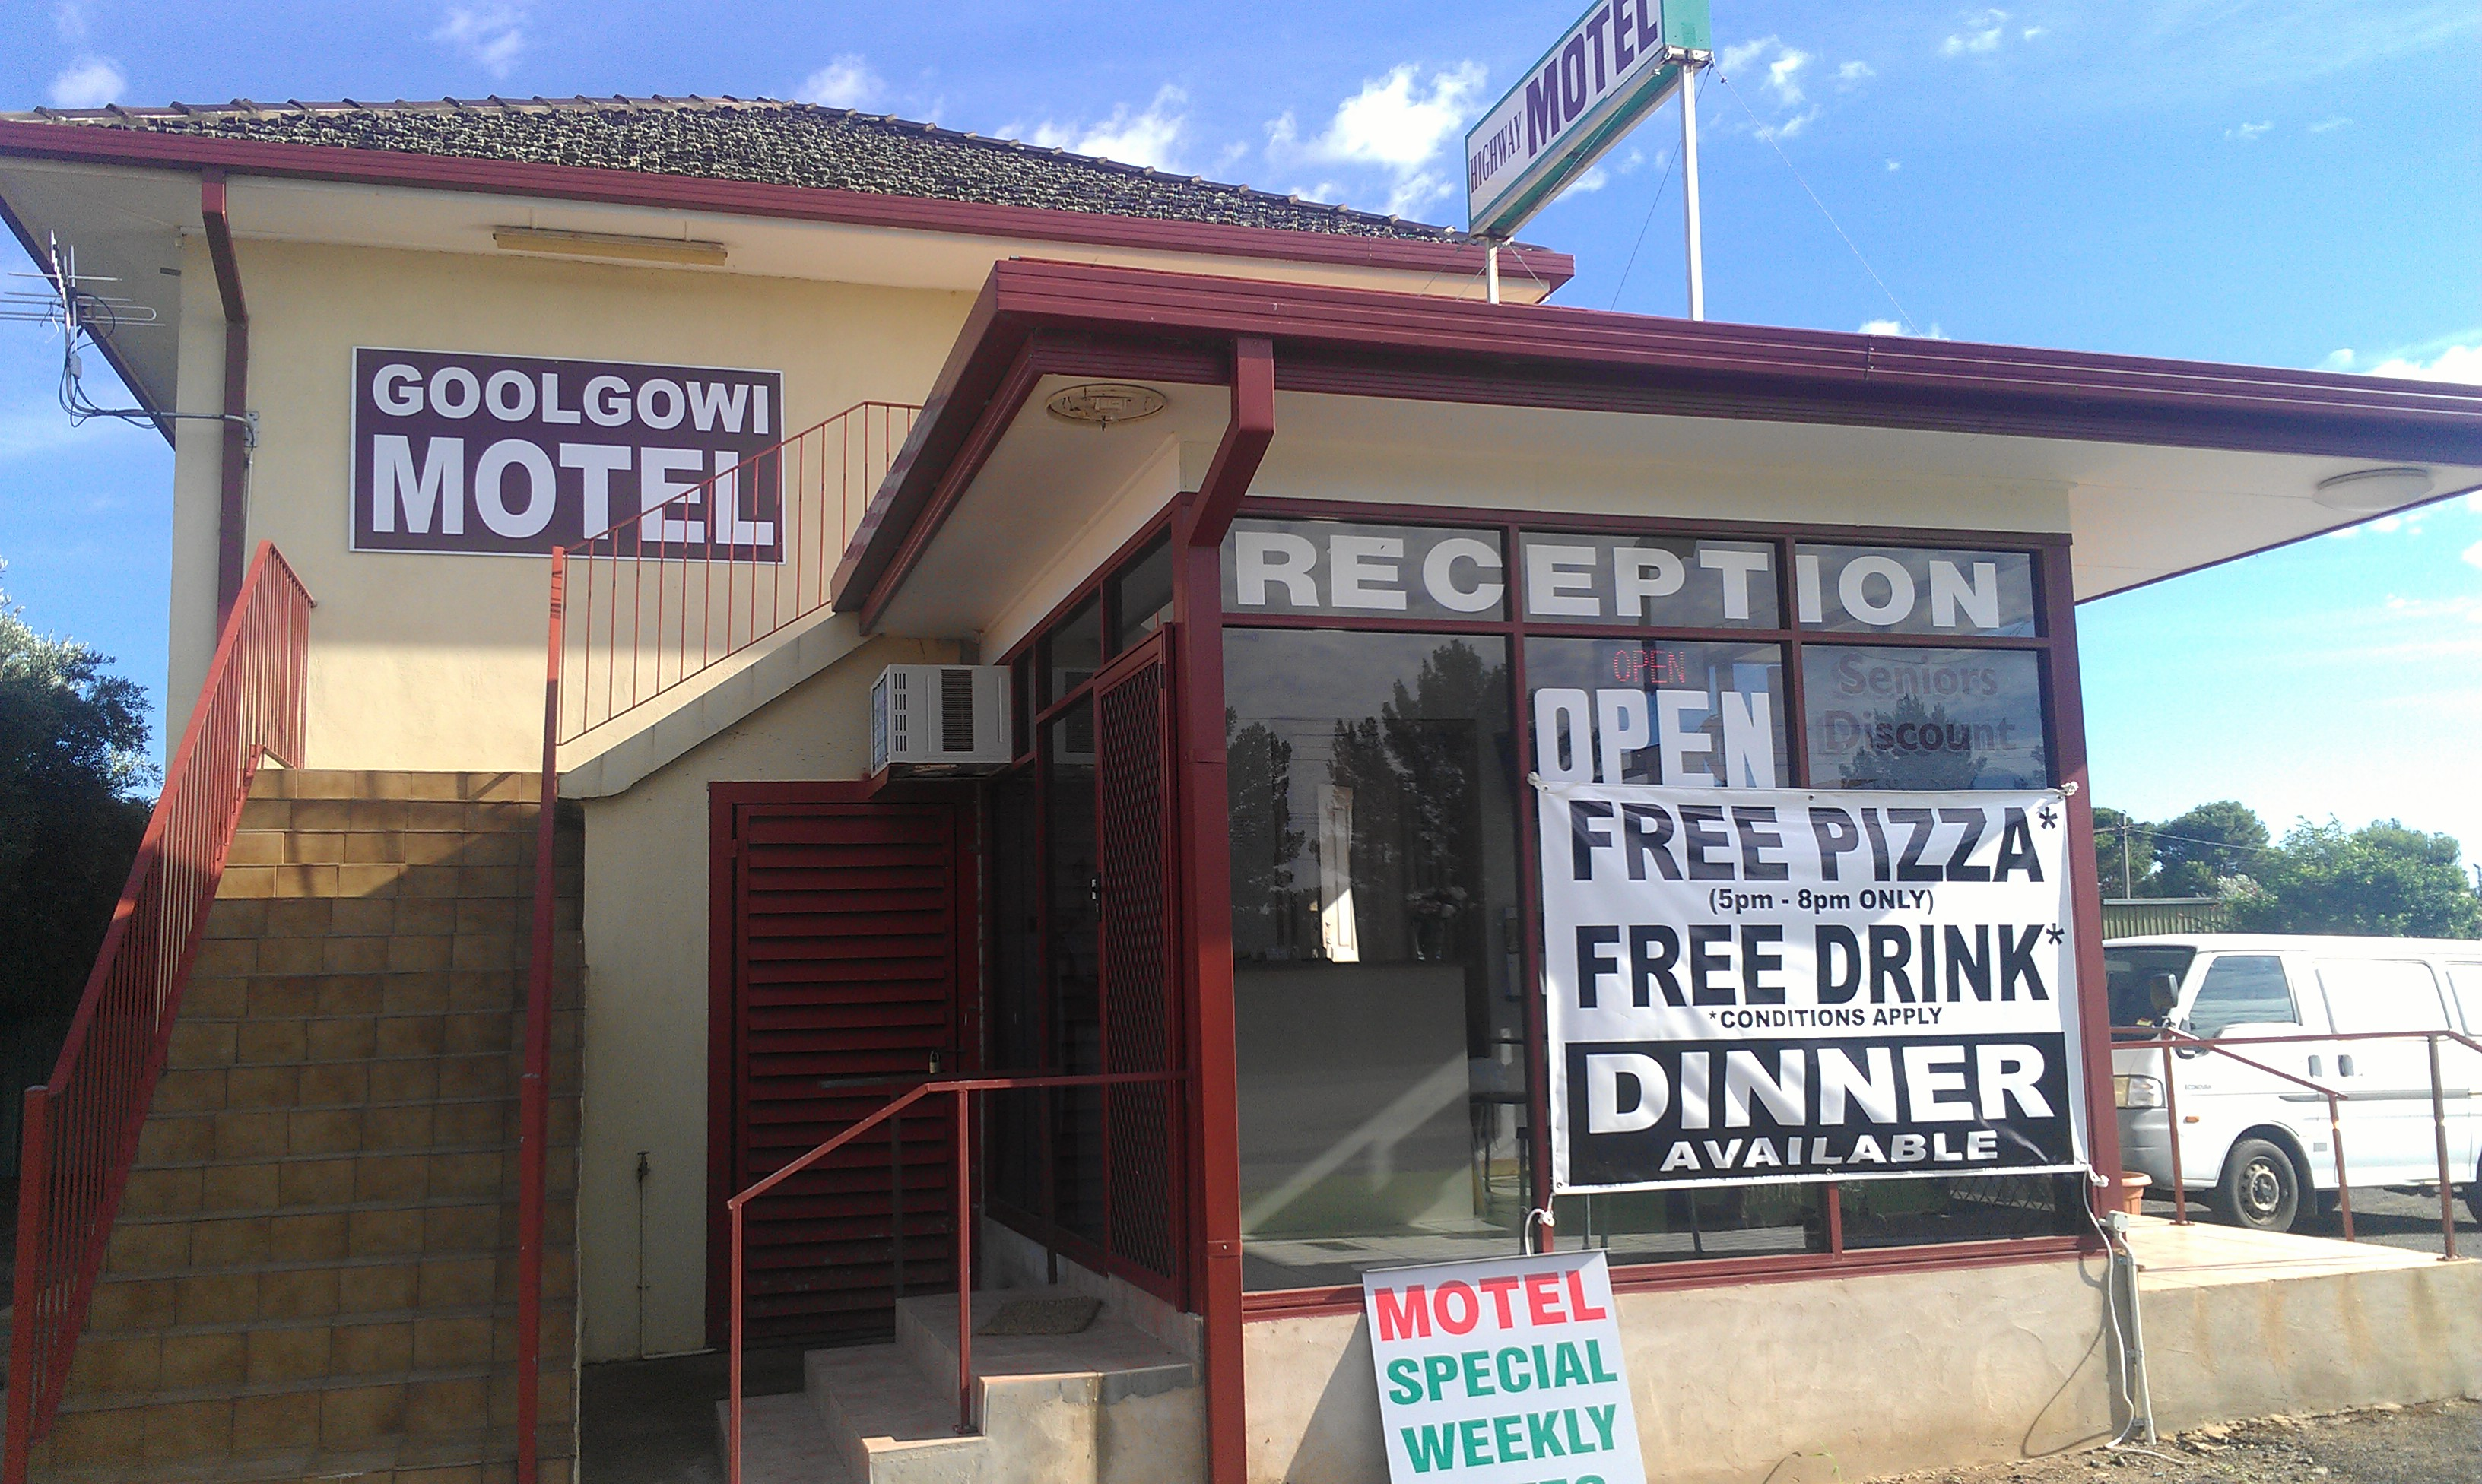 Royal Mail Hotel Goolgowi - Accommodation Mermaid Beach